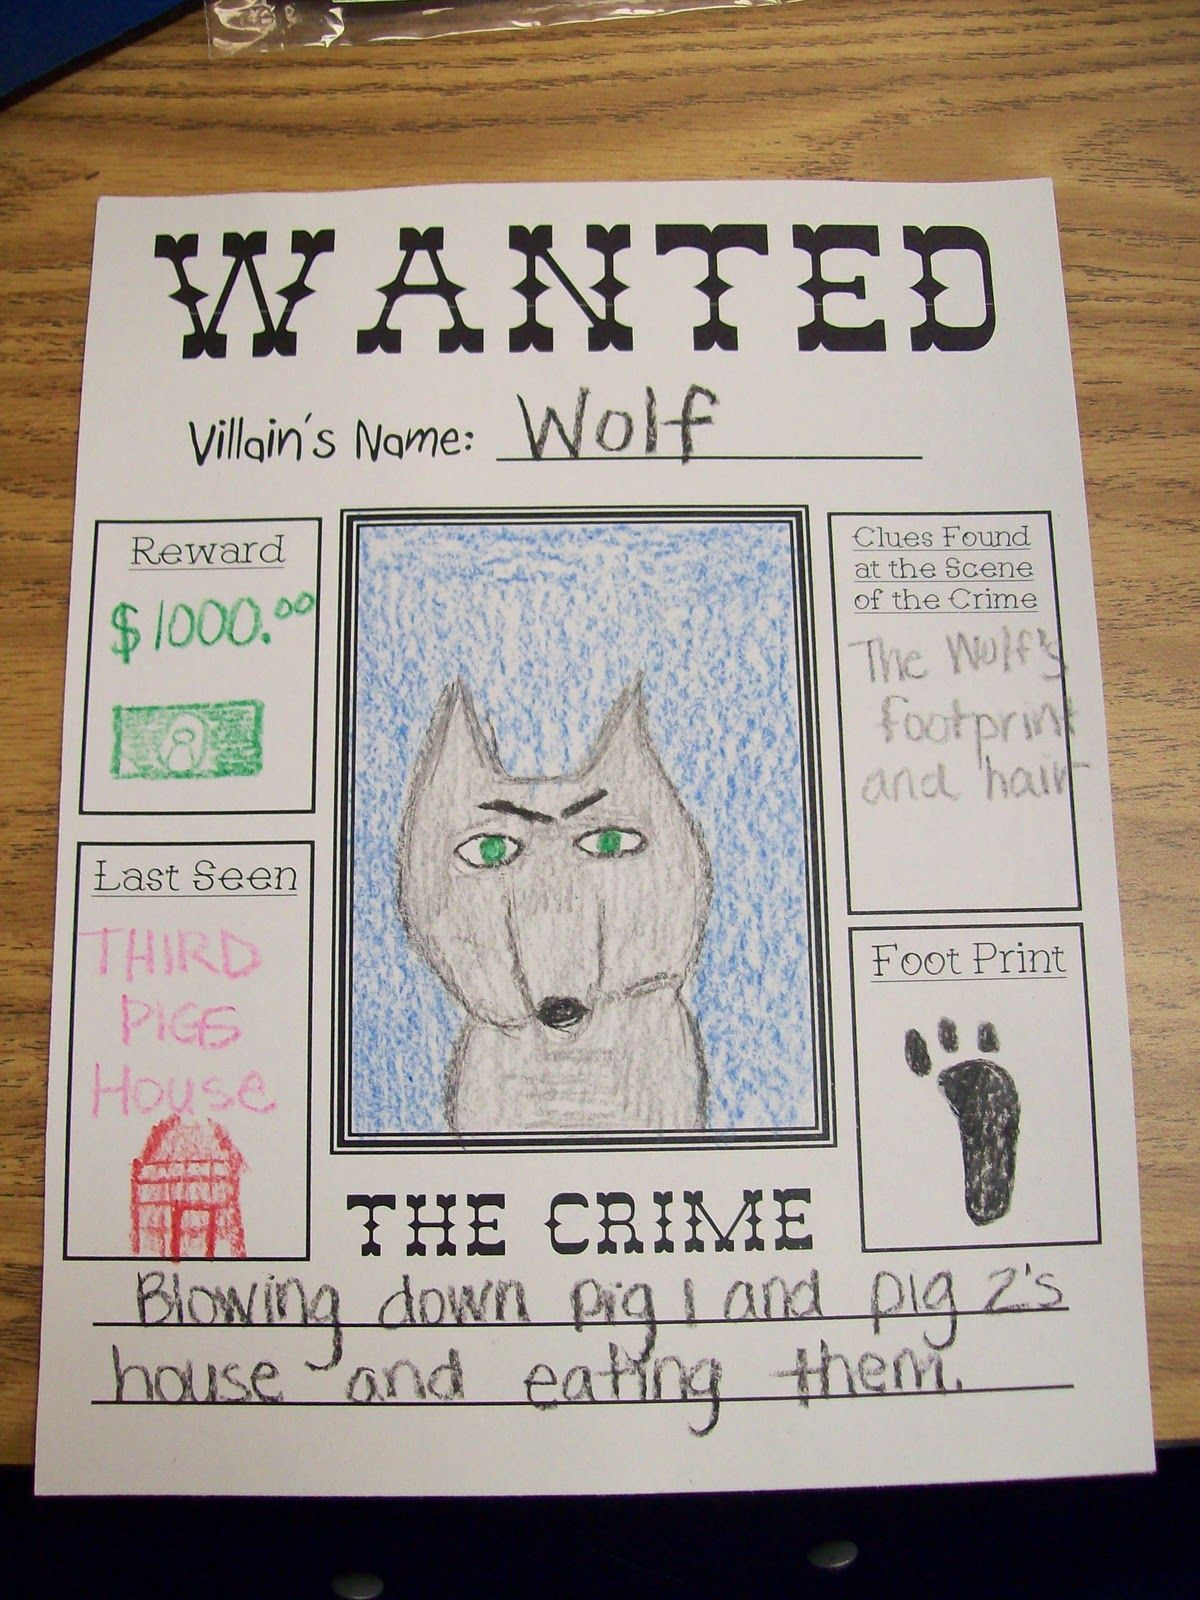 Wanted poster for the Big Bad Wolf